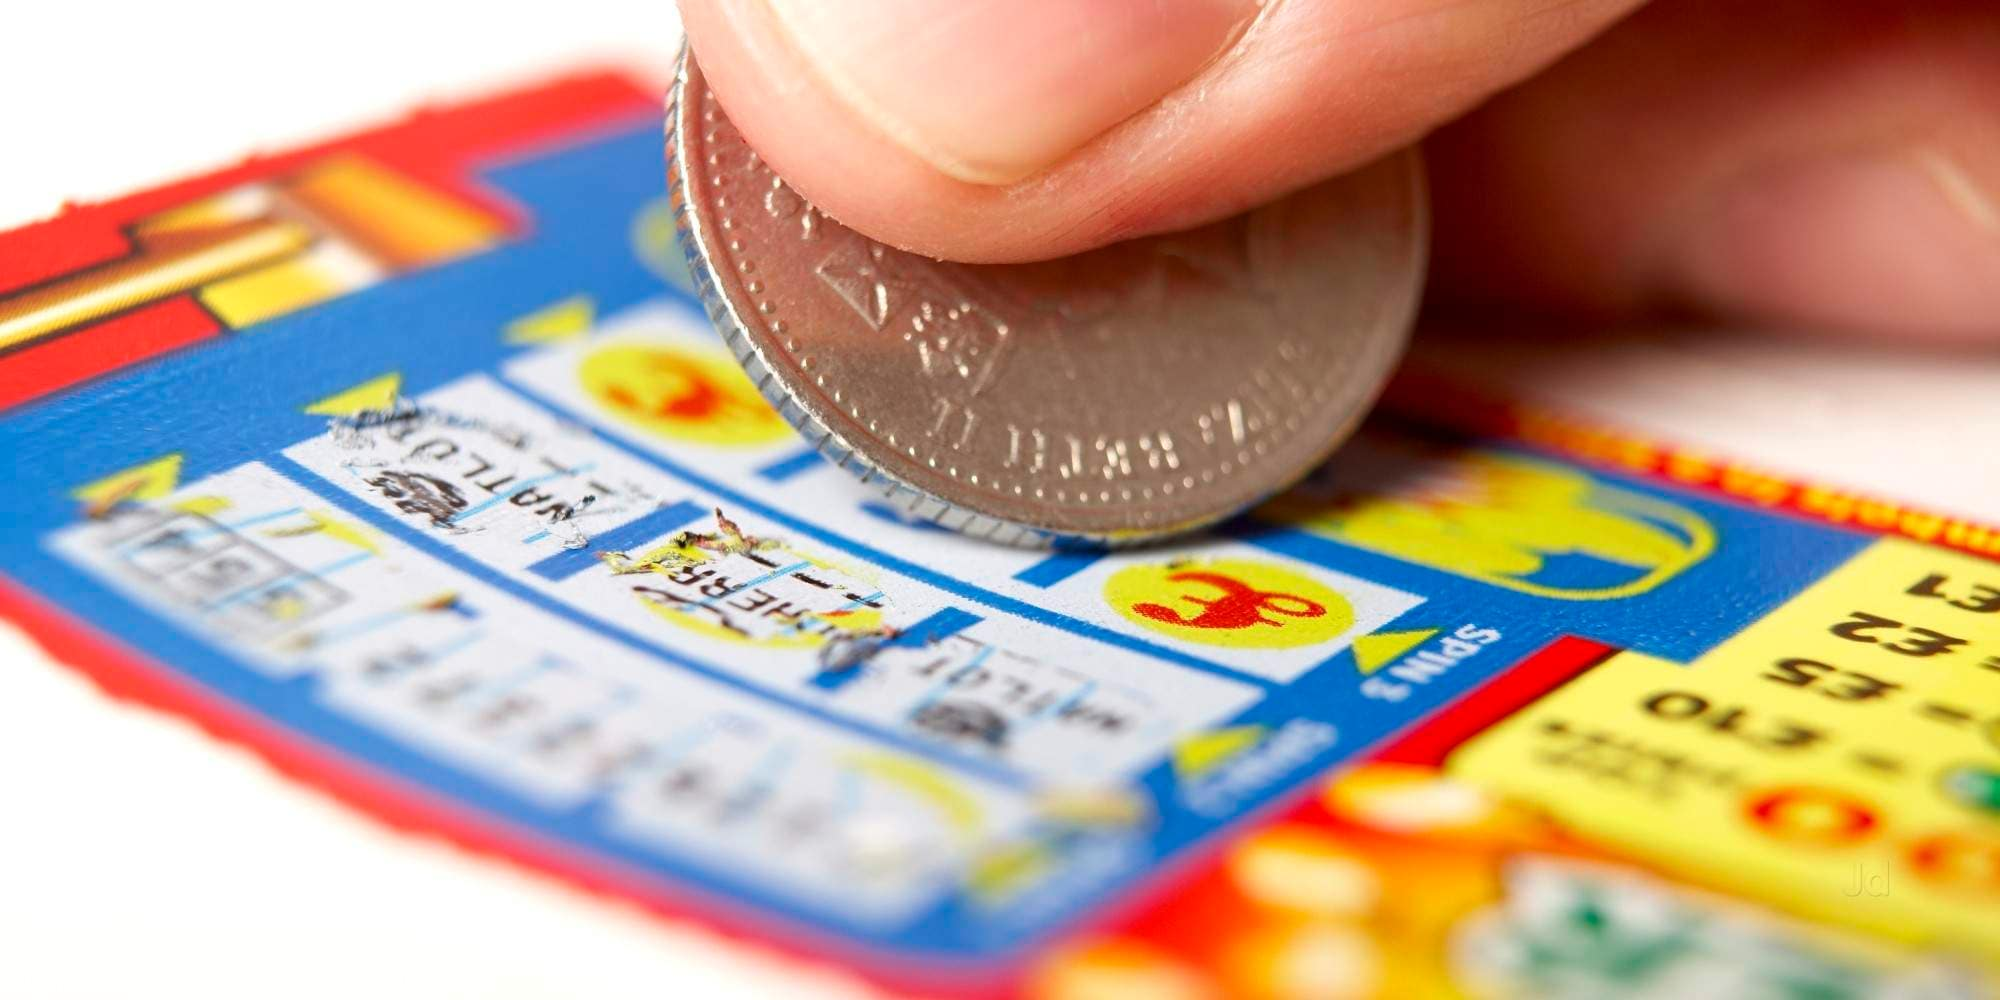 Top Lottery Ticket Agents in Delhi - Best Lotry Ticket Agent - Justdial